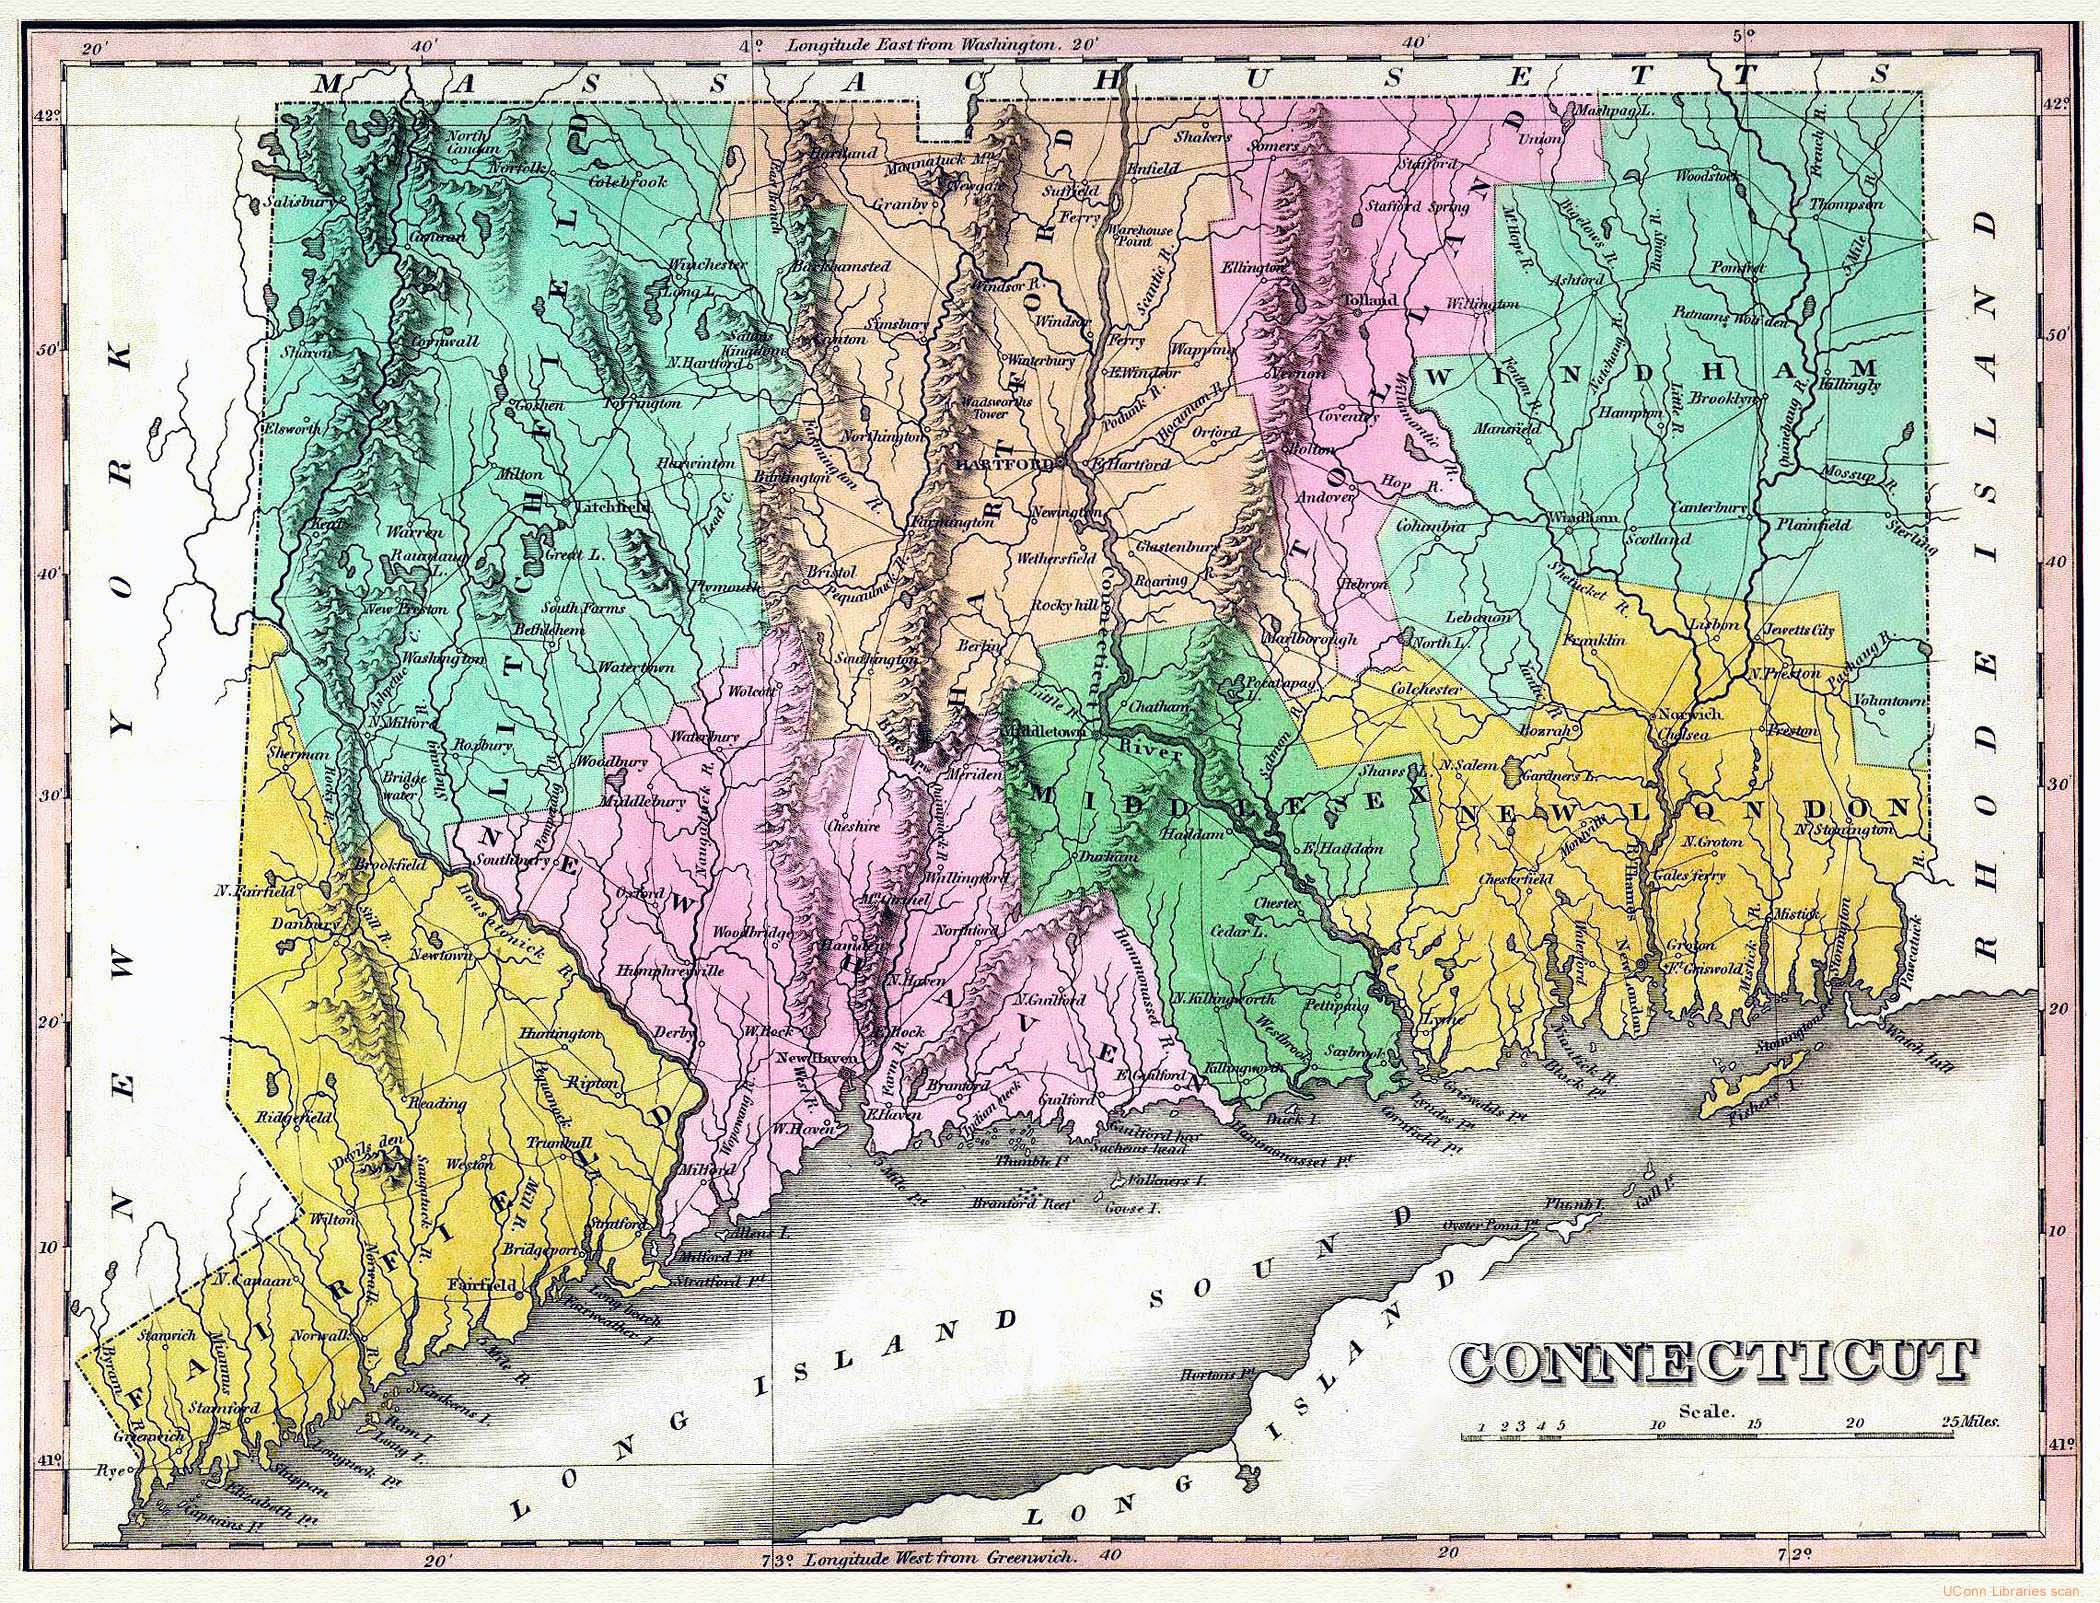 Large old map of Connecticut state with relief roads and cities